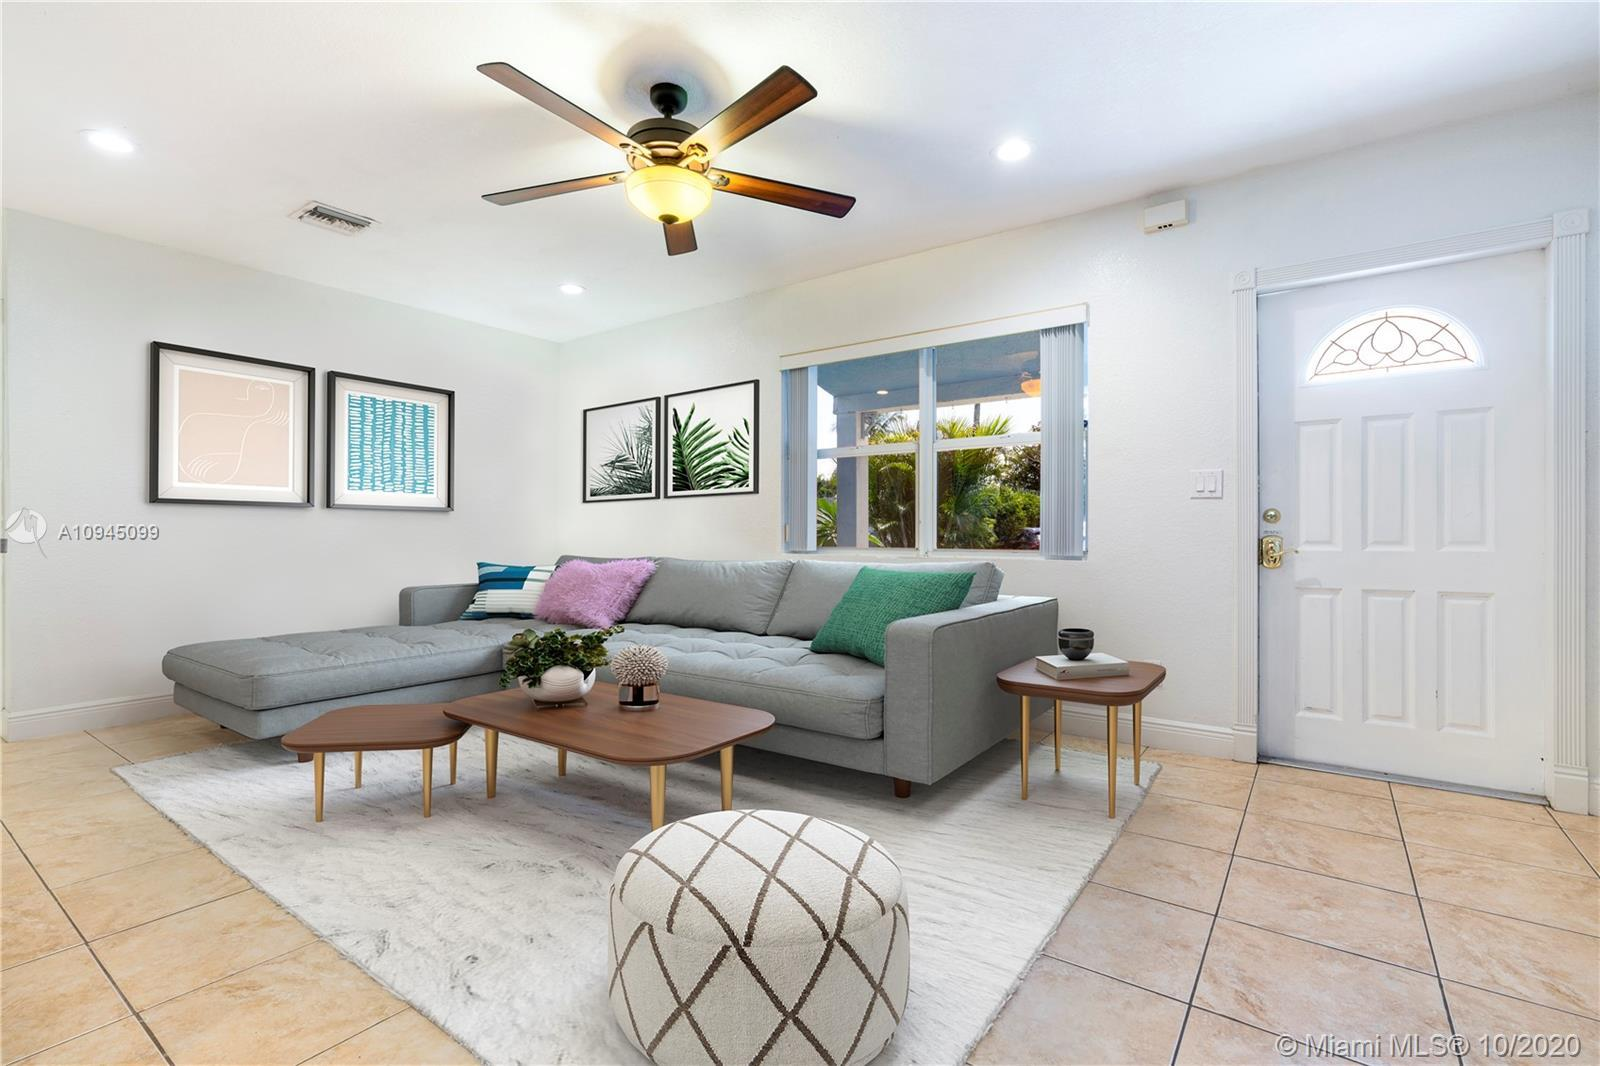 This lovely and spacious 3/1 home is perfectly situated in South Middle River in Fort Lauderdale. Th